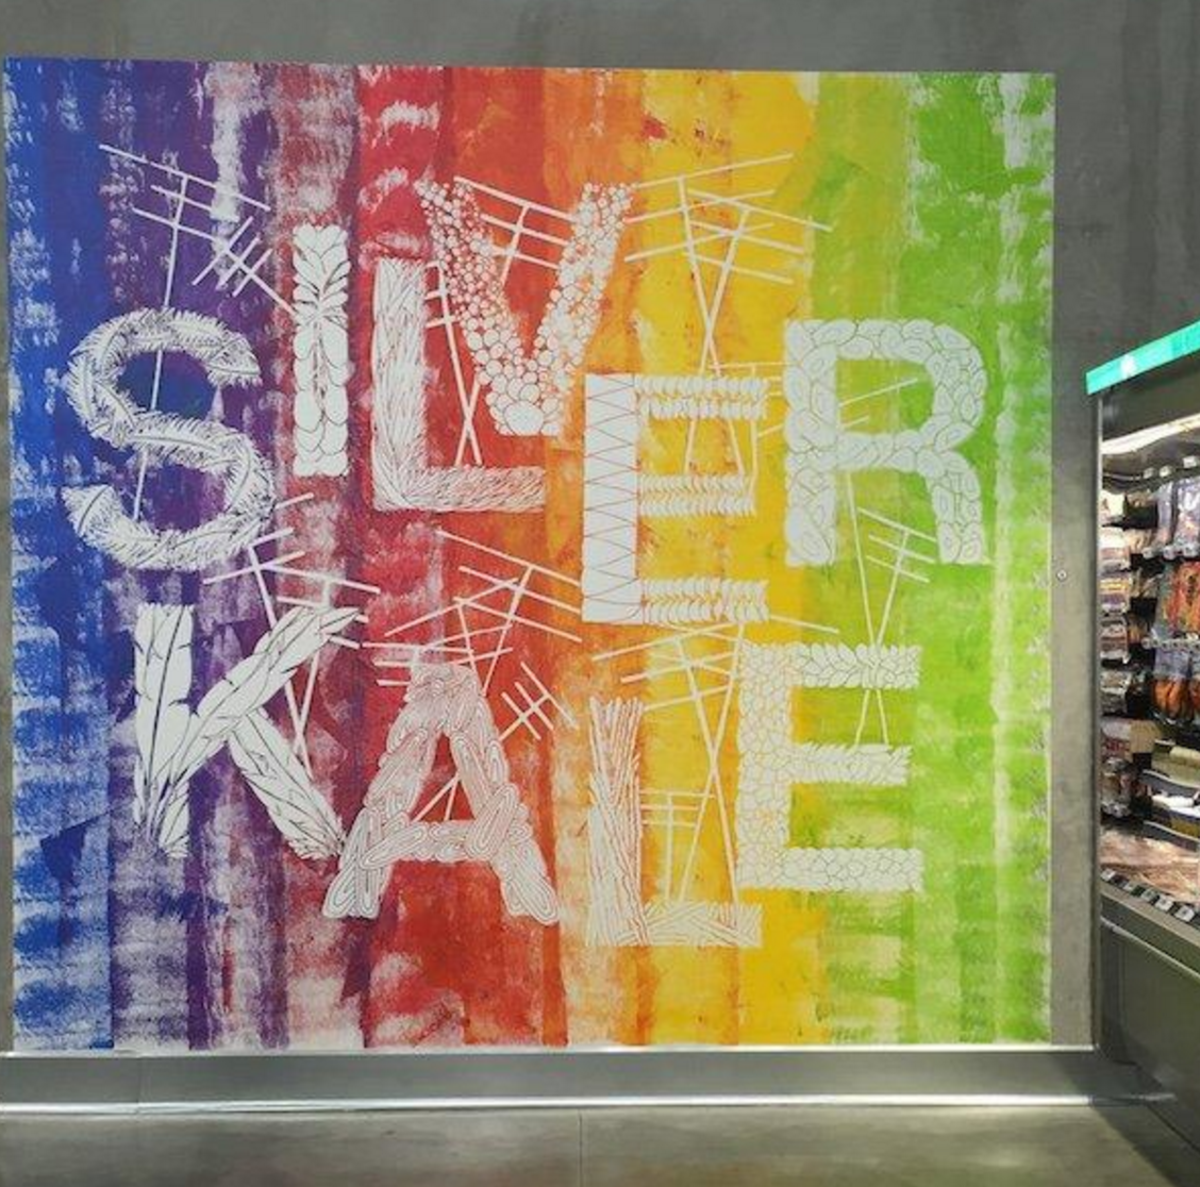 Silver Kale. Those words are emblazoned on a giant wall of the new 365 by Whole Foods Market situated in the trendy LA neighborhood of Silver Lake. It's a playful twist, much like the rest of the store.